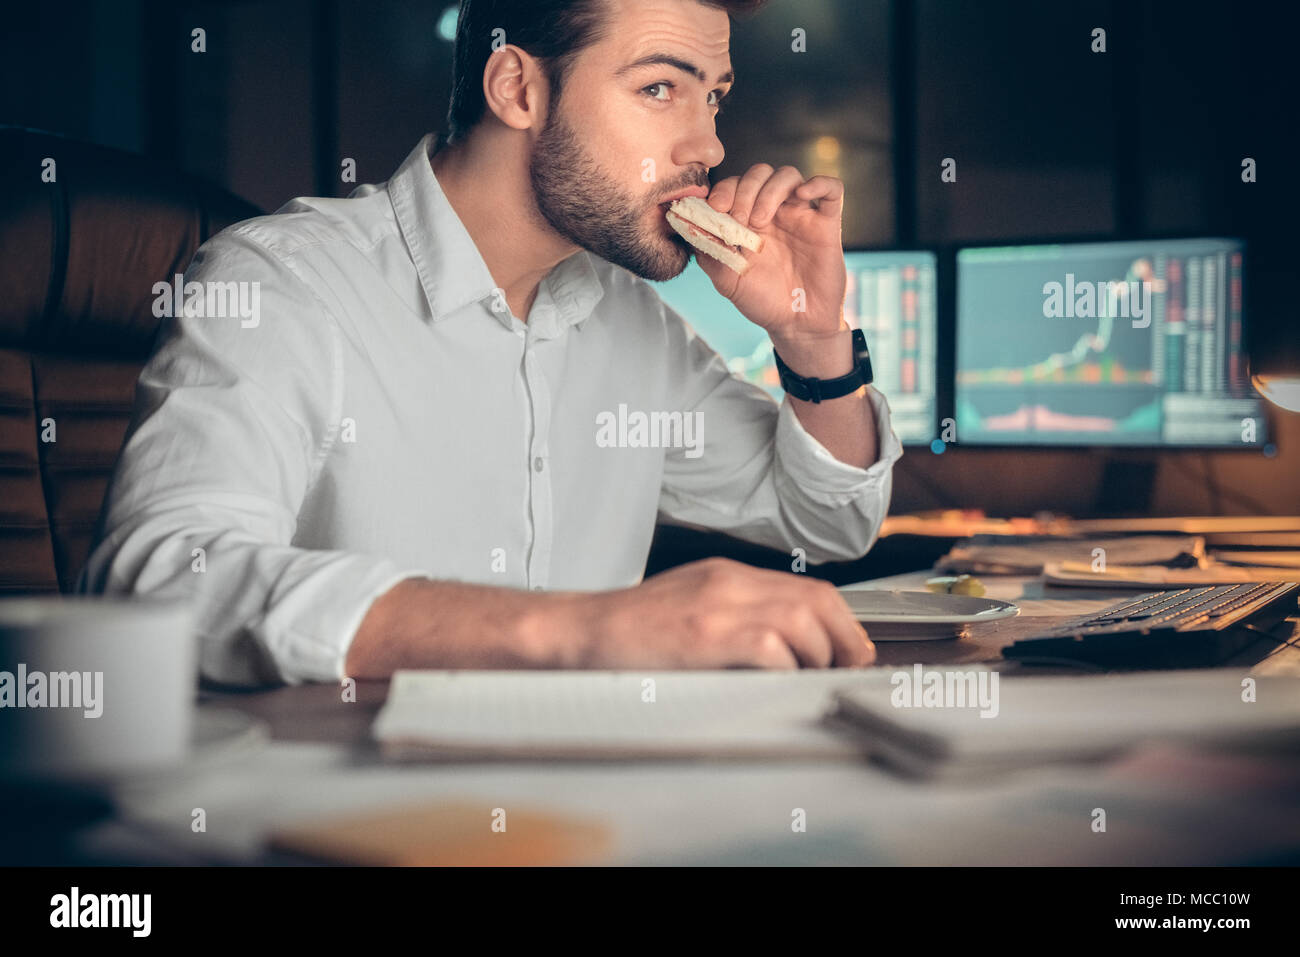 Busy businessman having late lunch eating sandwich in office working at night, stock broker trading online and eating snack looking at computer, workp - Stock Image